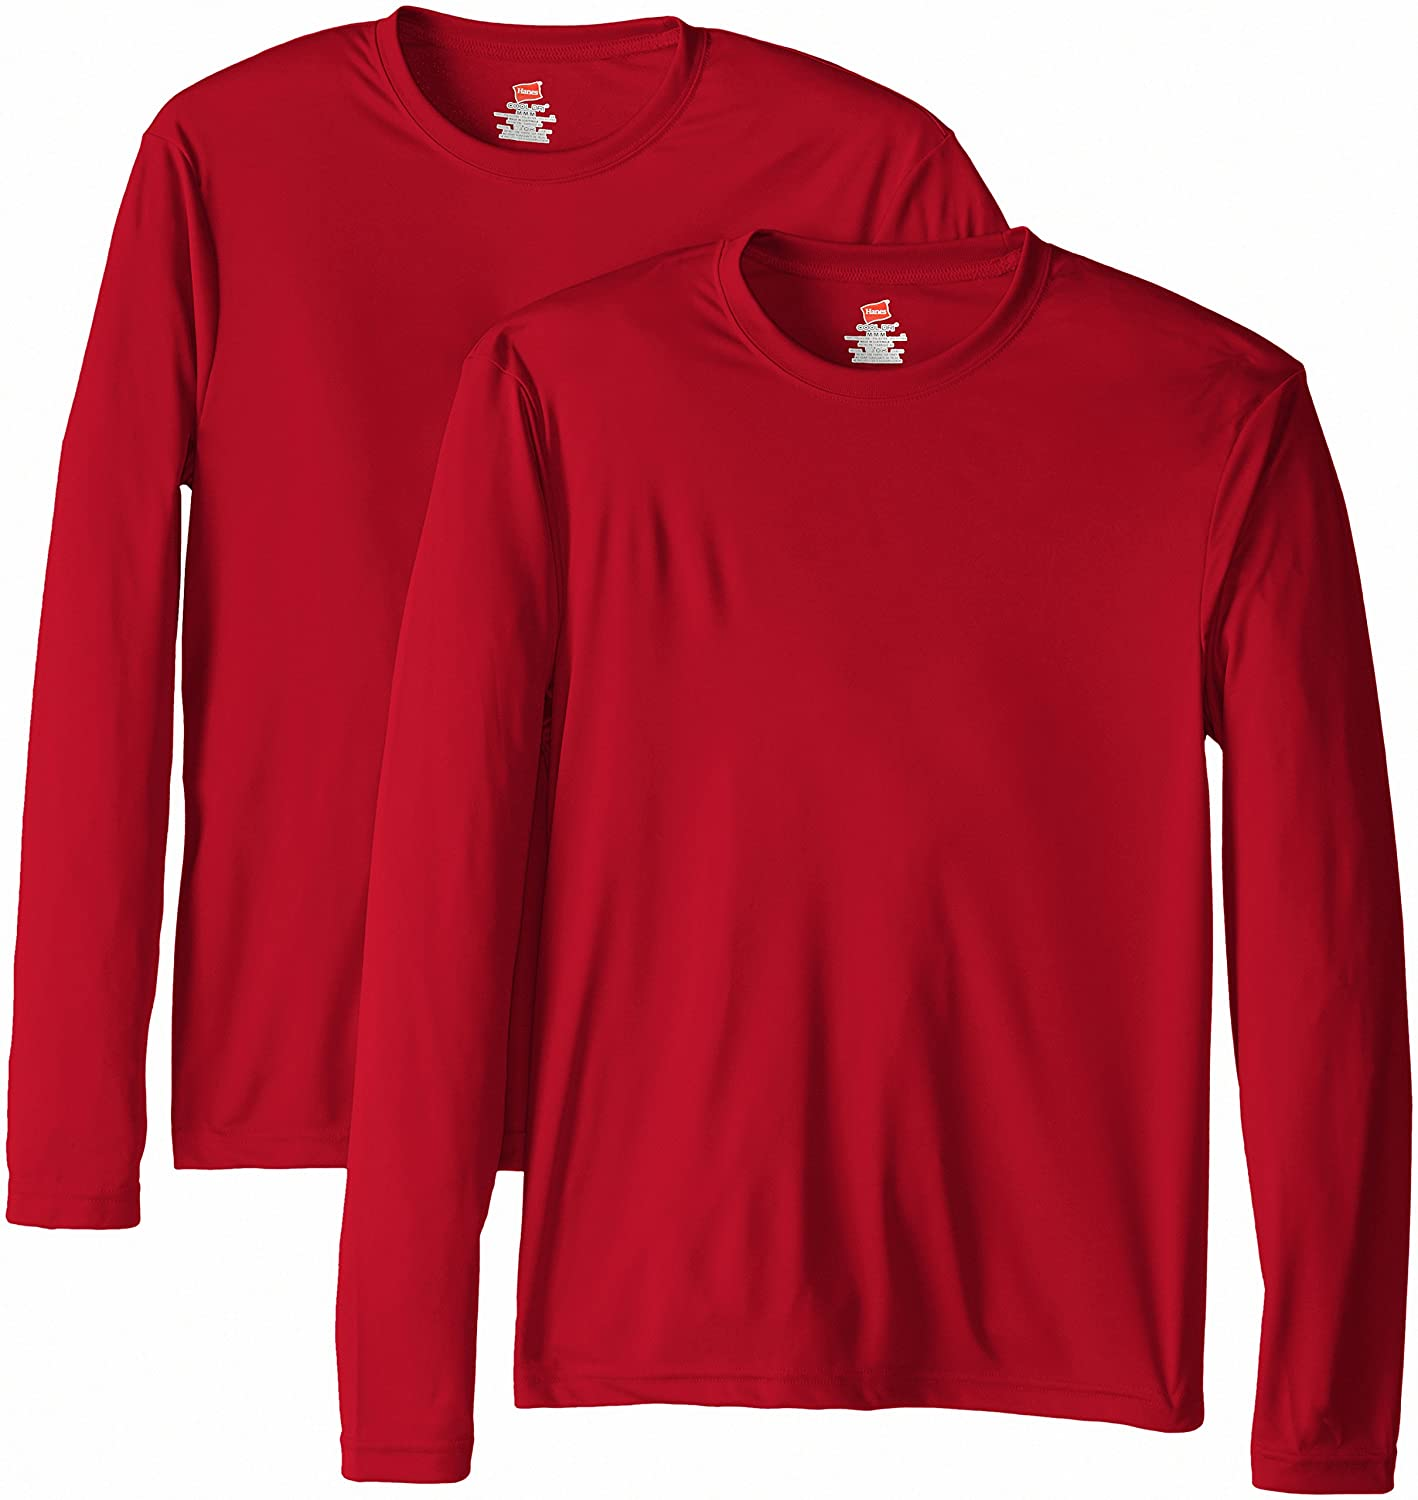 81ea544d0167 Hanes Men's Long Sleeve Cool Dri T-Shirt UPF 50+ (Pack of 2) at Amazon  Men's Clothing store: